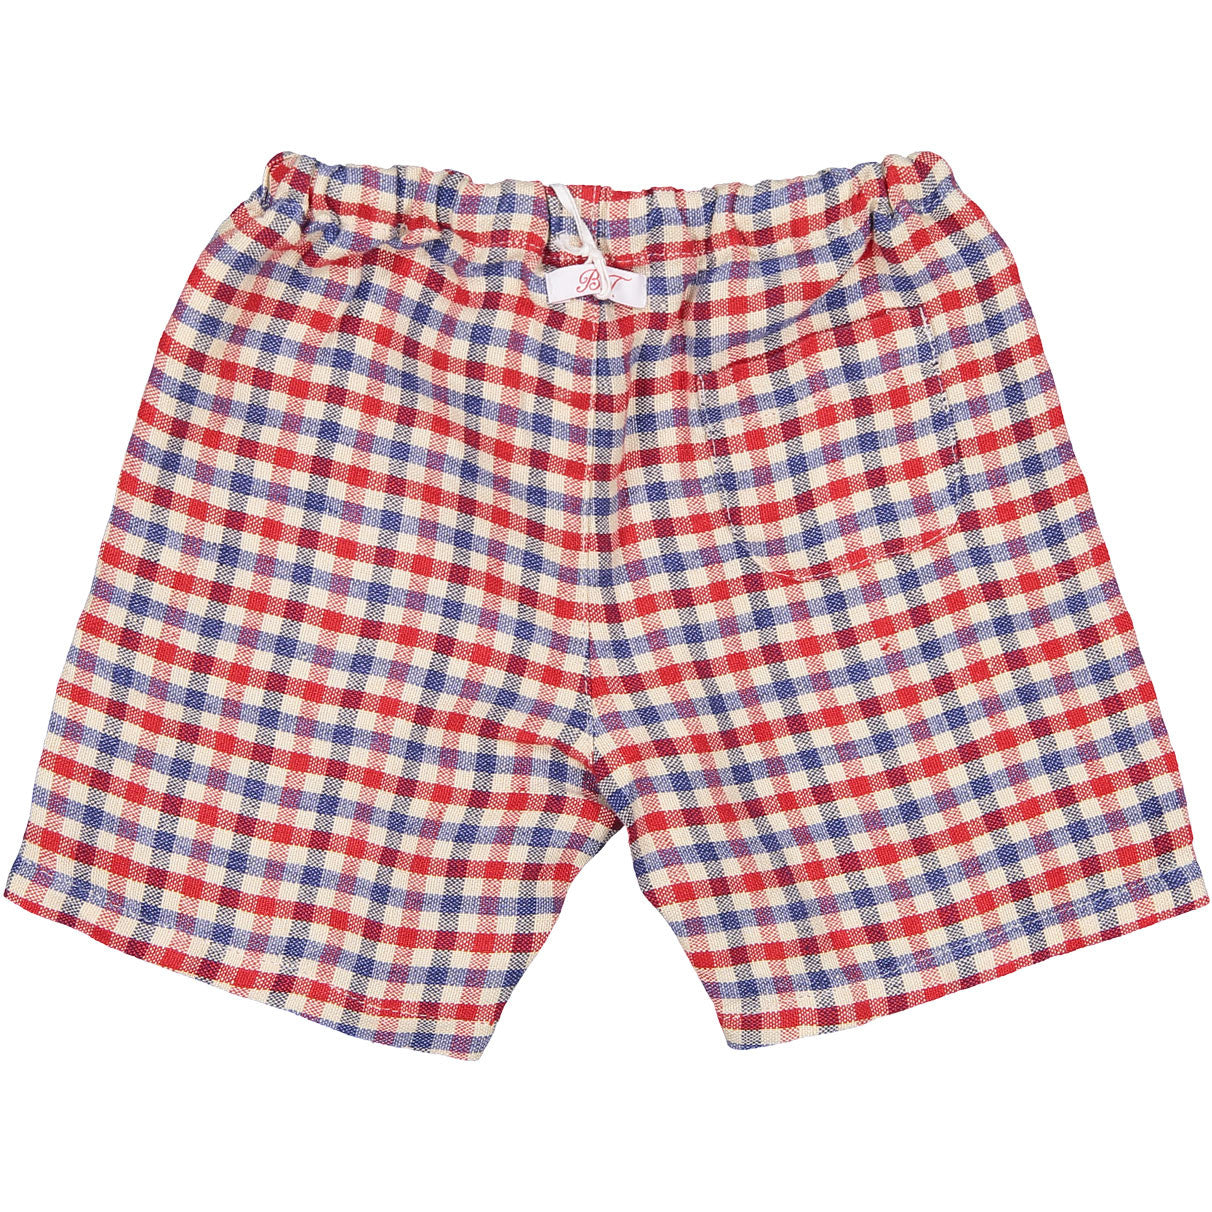 Babe and Tess Red/Blue Check Shorts - Ladida